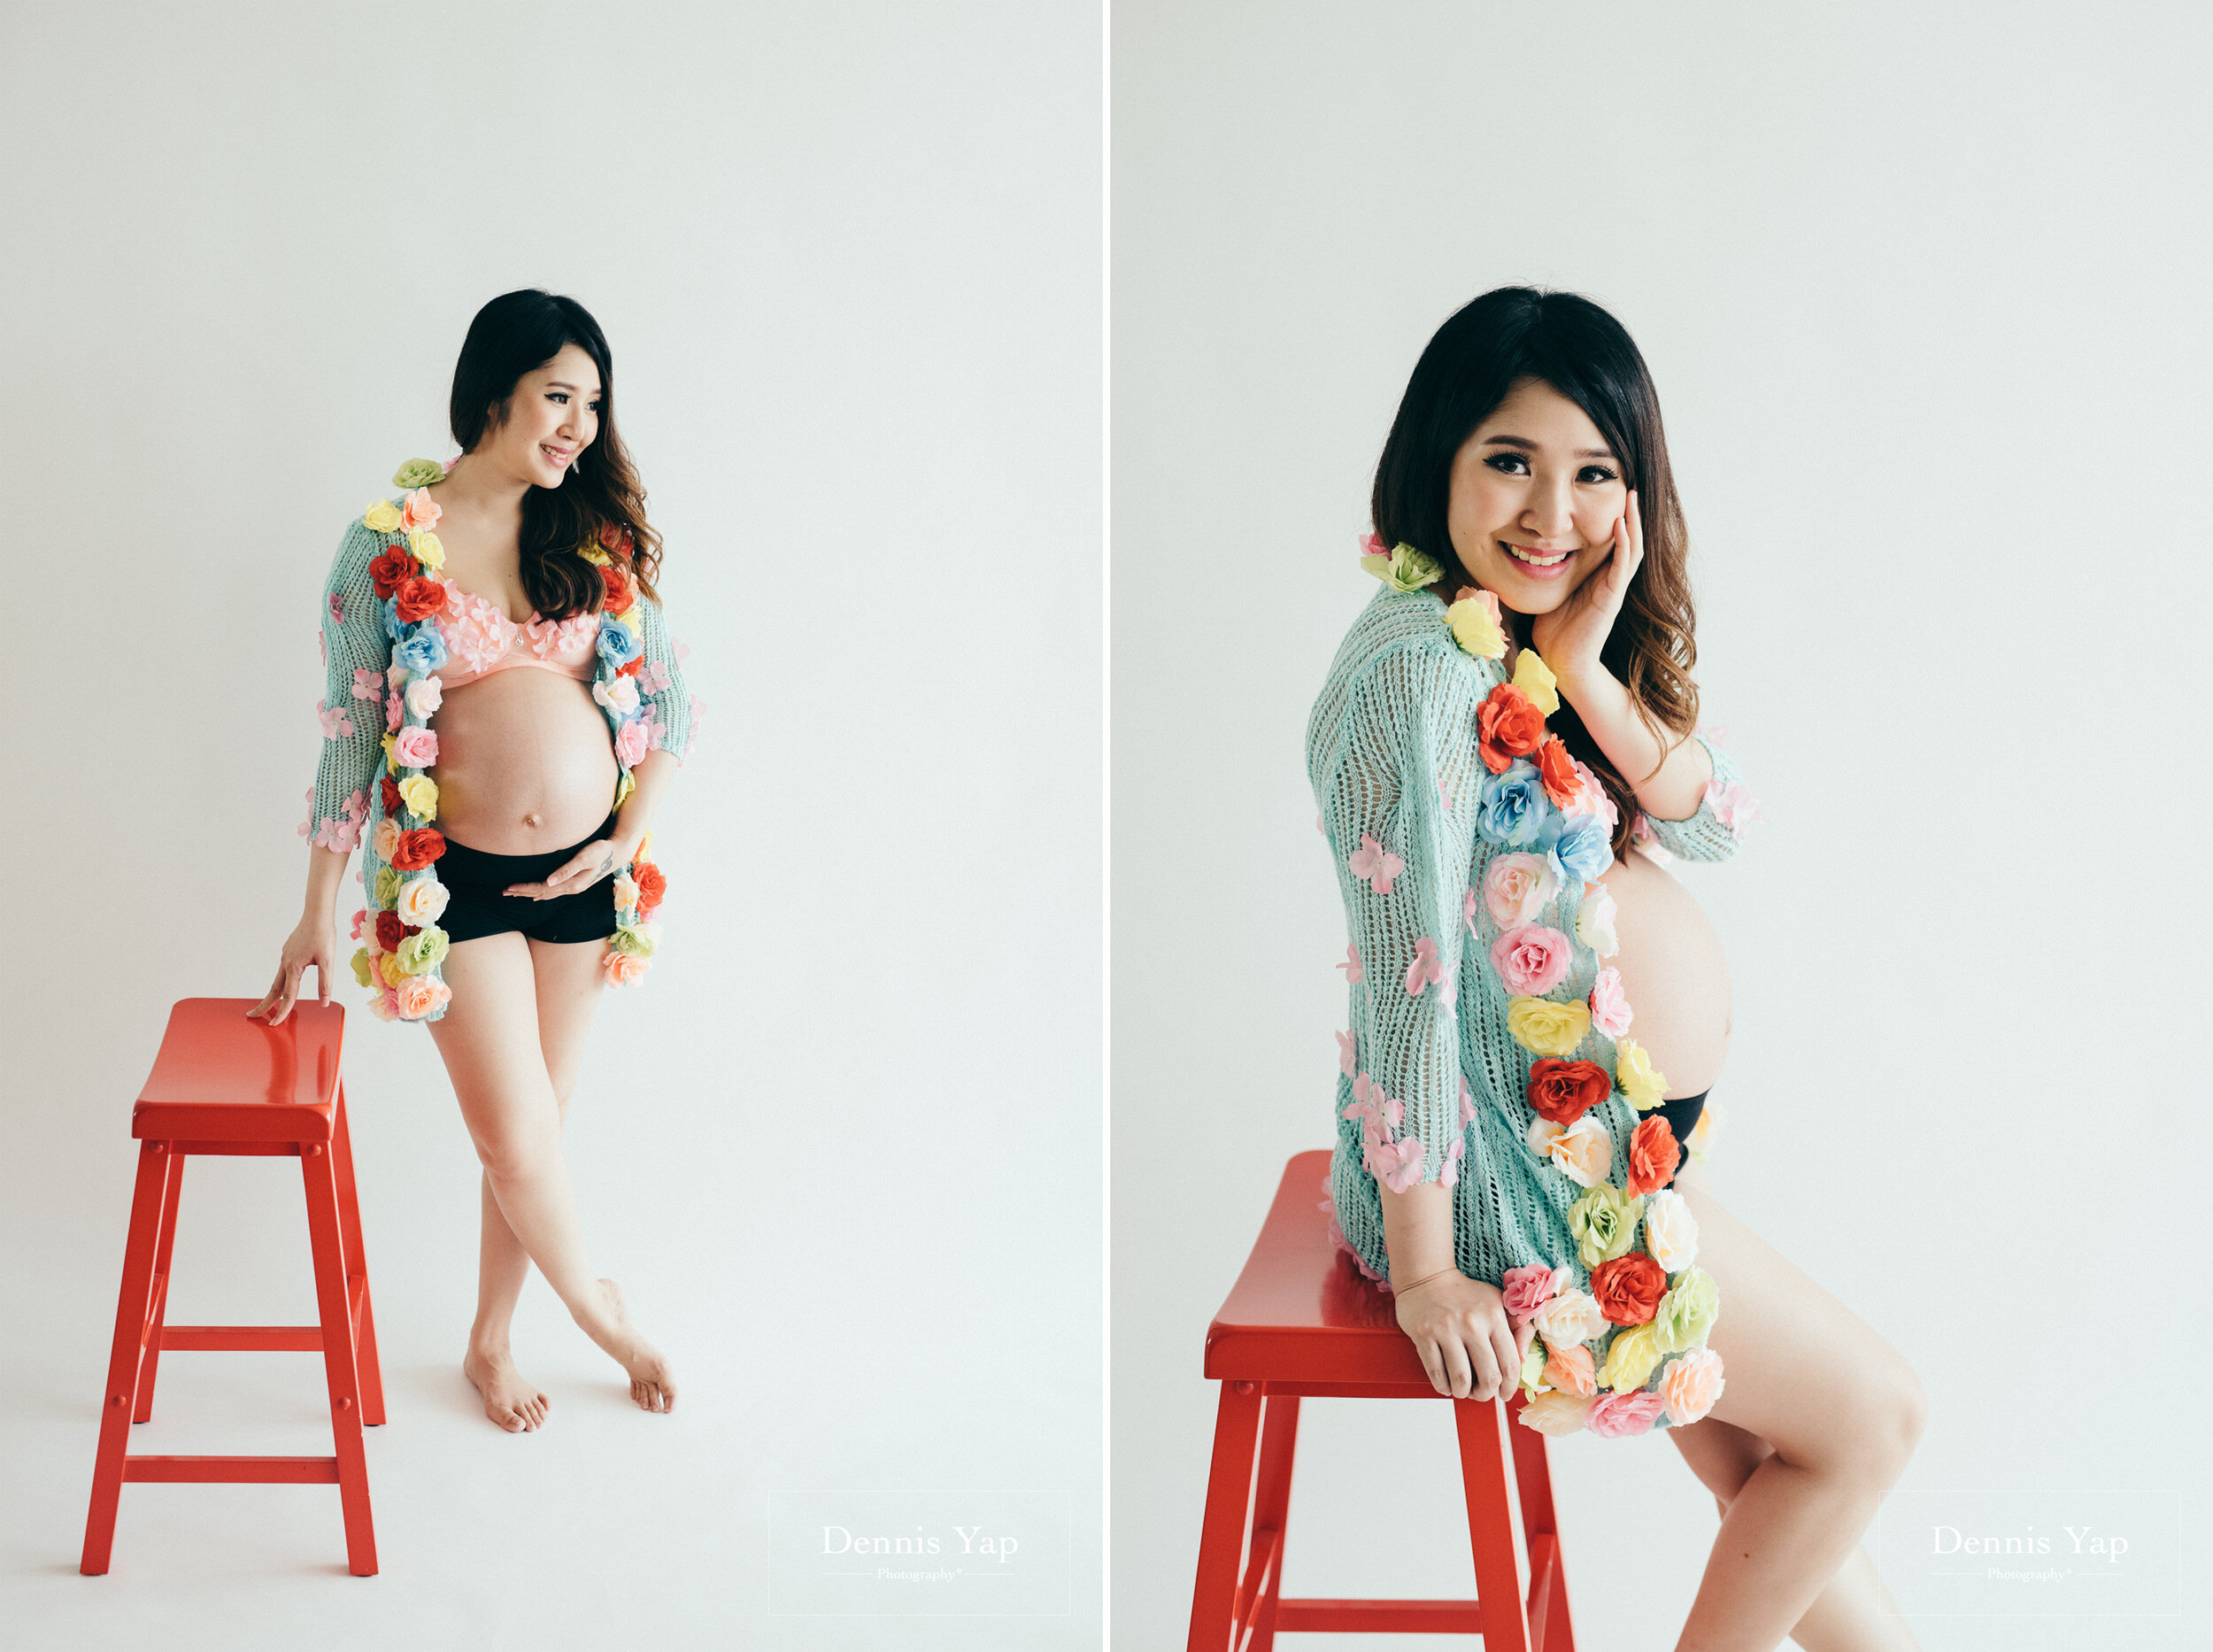 isaac evon maternity family portrait dennis yap photography studio indoor fun colorful-125.jpg